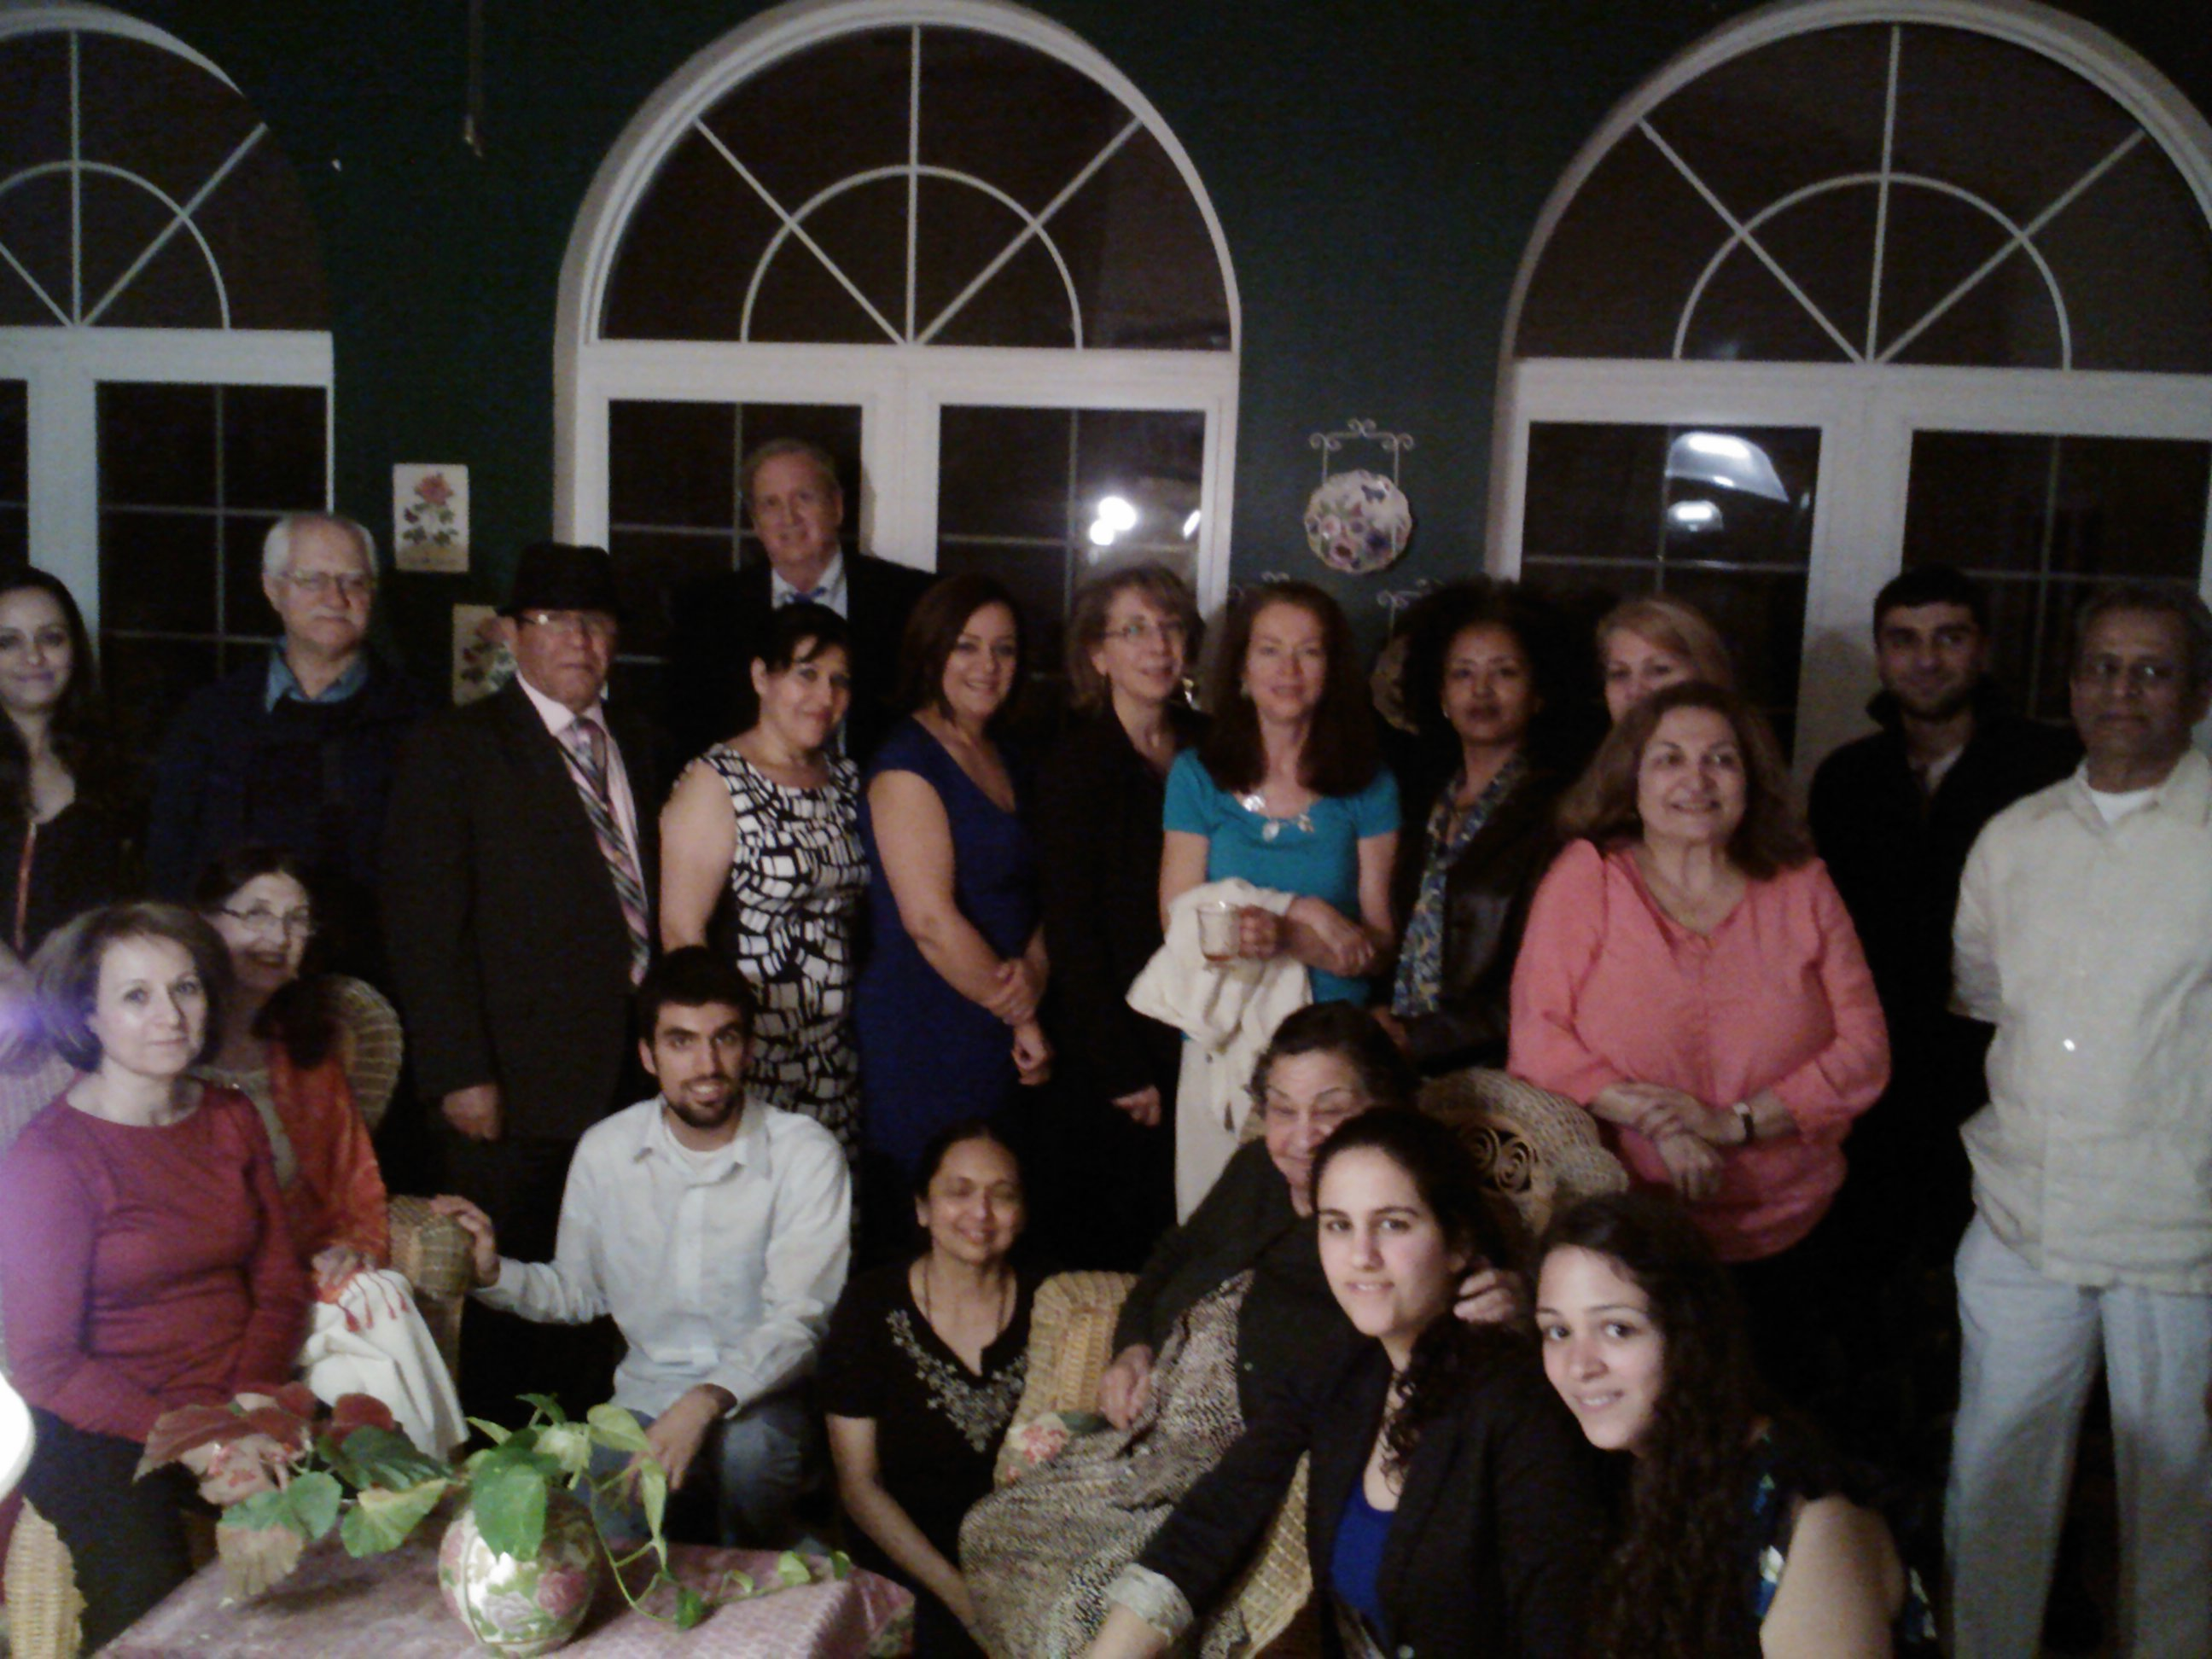 Members of the Baha'i faith community gather in Gaithersburg for Ridvan. Photo by Manousheed Bagha.